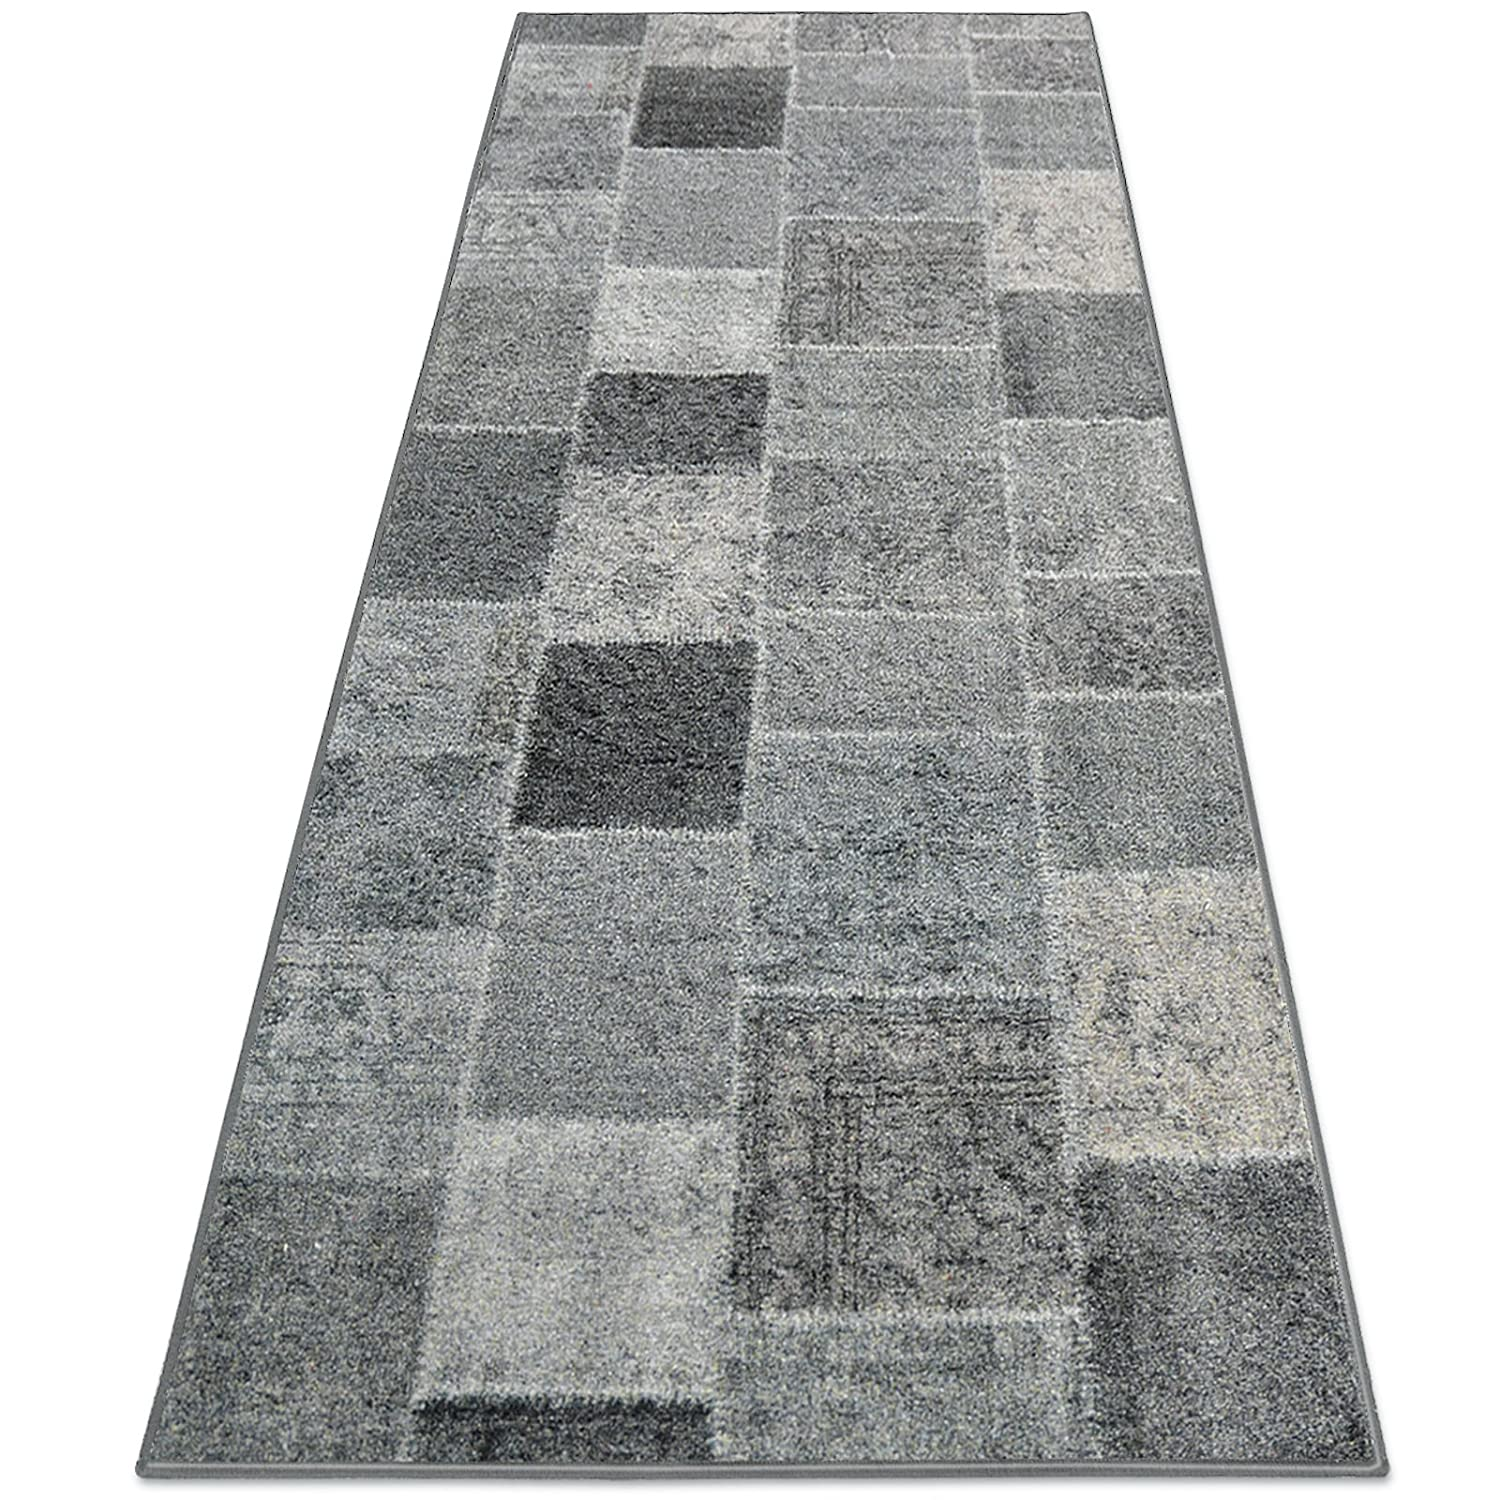 casa pura® Patchwork Rug Runner for Hallway, Anthracite 80x100cm | Non-Slip | Vintage Style Pattern Ideal for Kitchen, Bedroom Floor etc